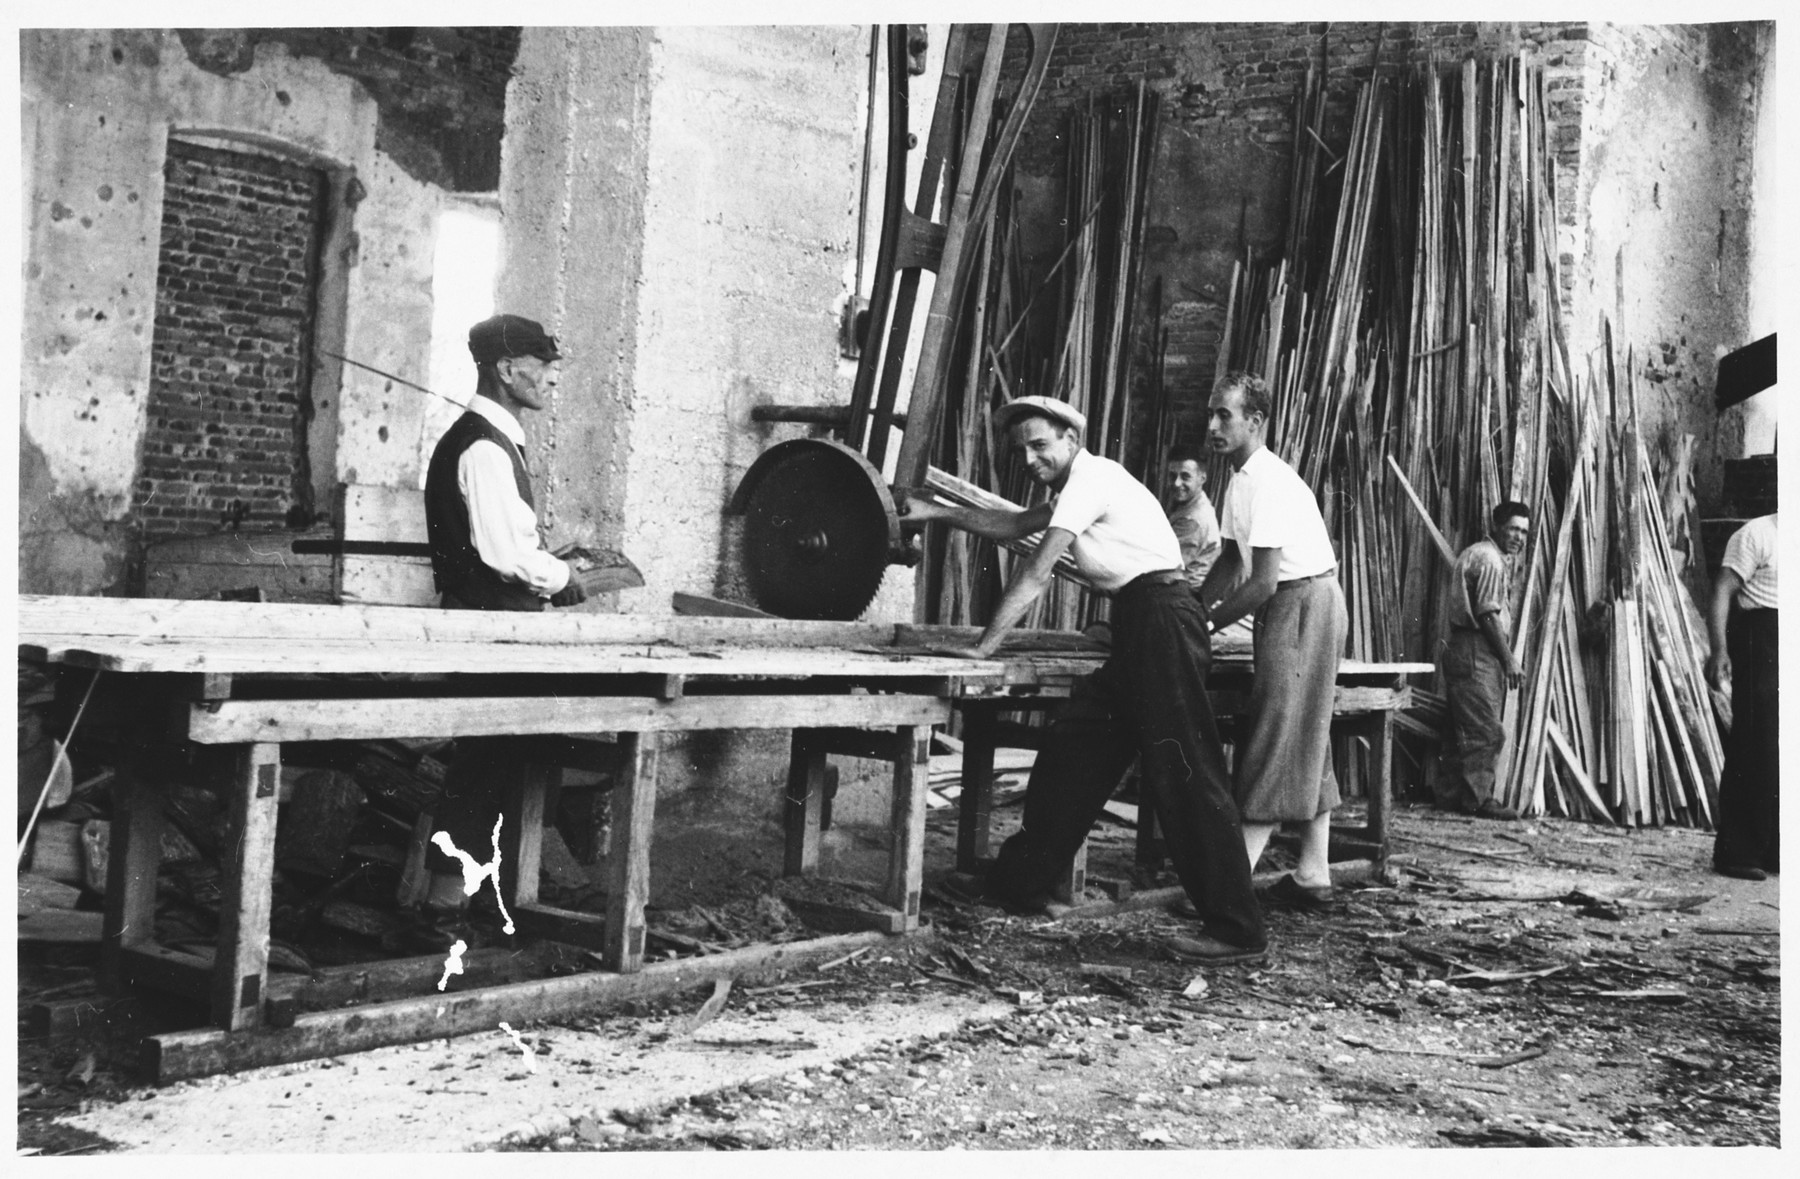 A group of young Jewish men at forced labor in a lumber mill in Gorizia, Italy.  Among those pictured are Marcello Morpugo (right, at the table) and Giacomo Donati (second from right at the table).  Giacomo was later killed during the war as a partisan.